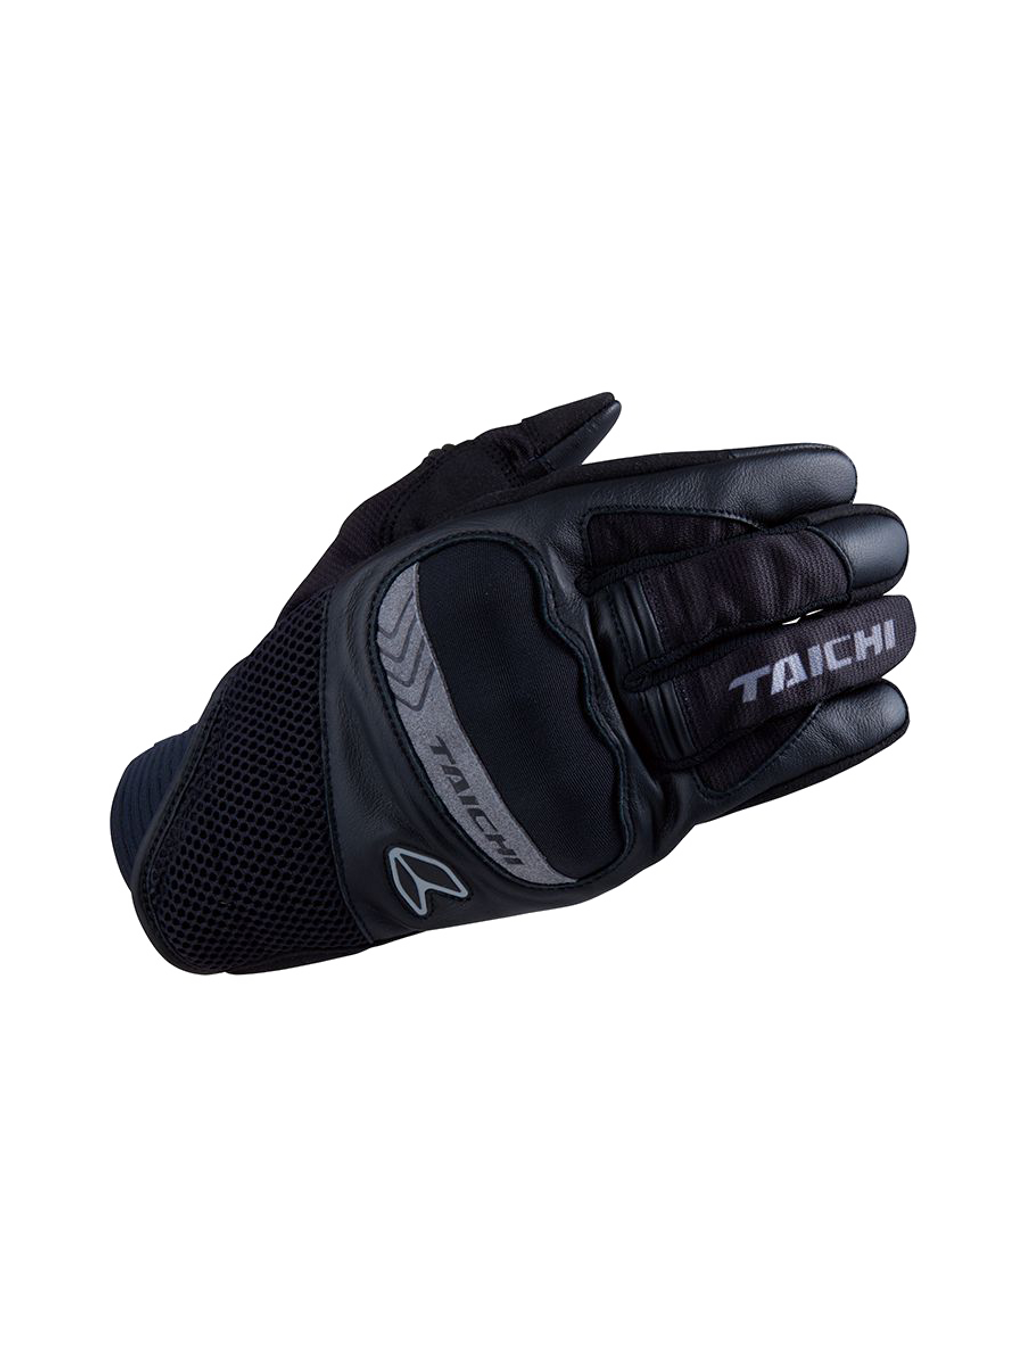 43 RS TAICHI RST446 SCOUT MESH GLOVE black.png